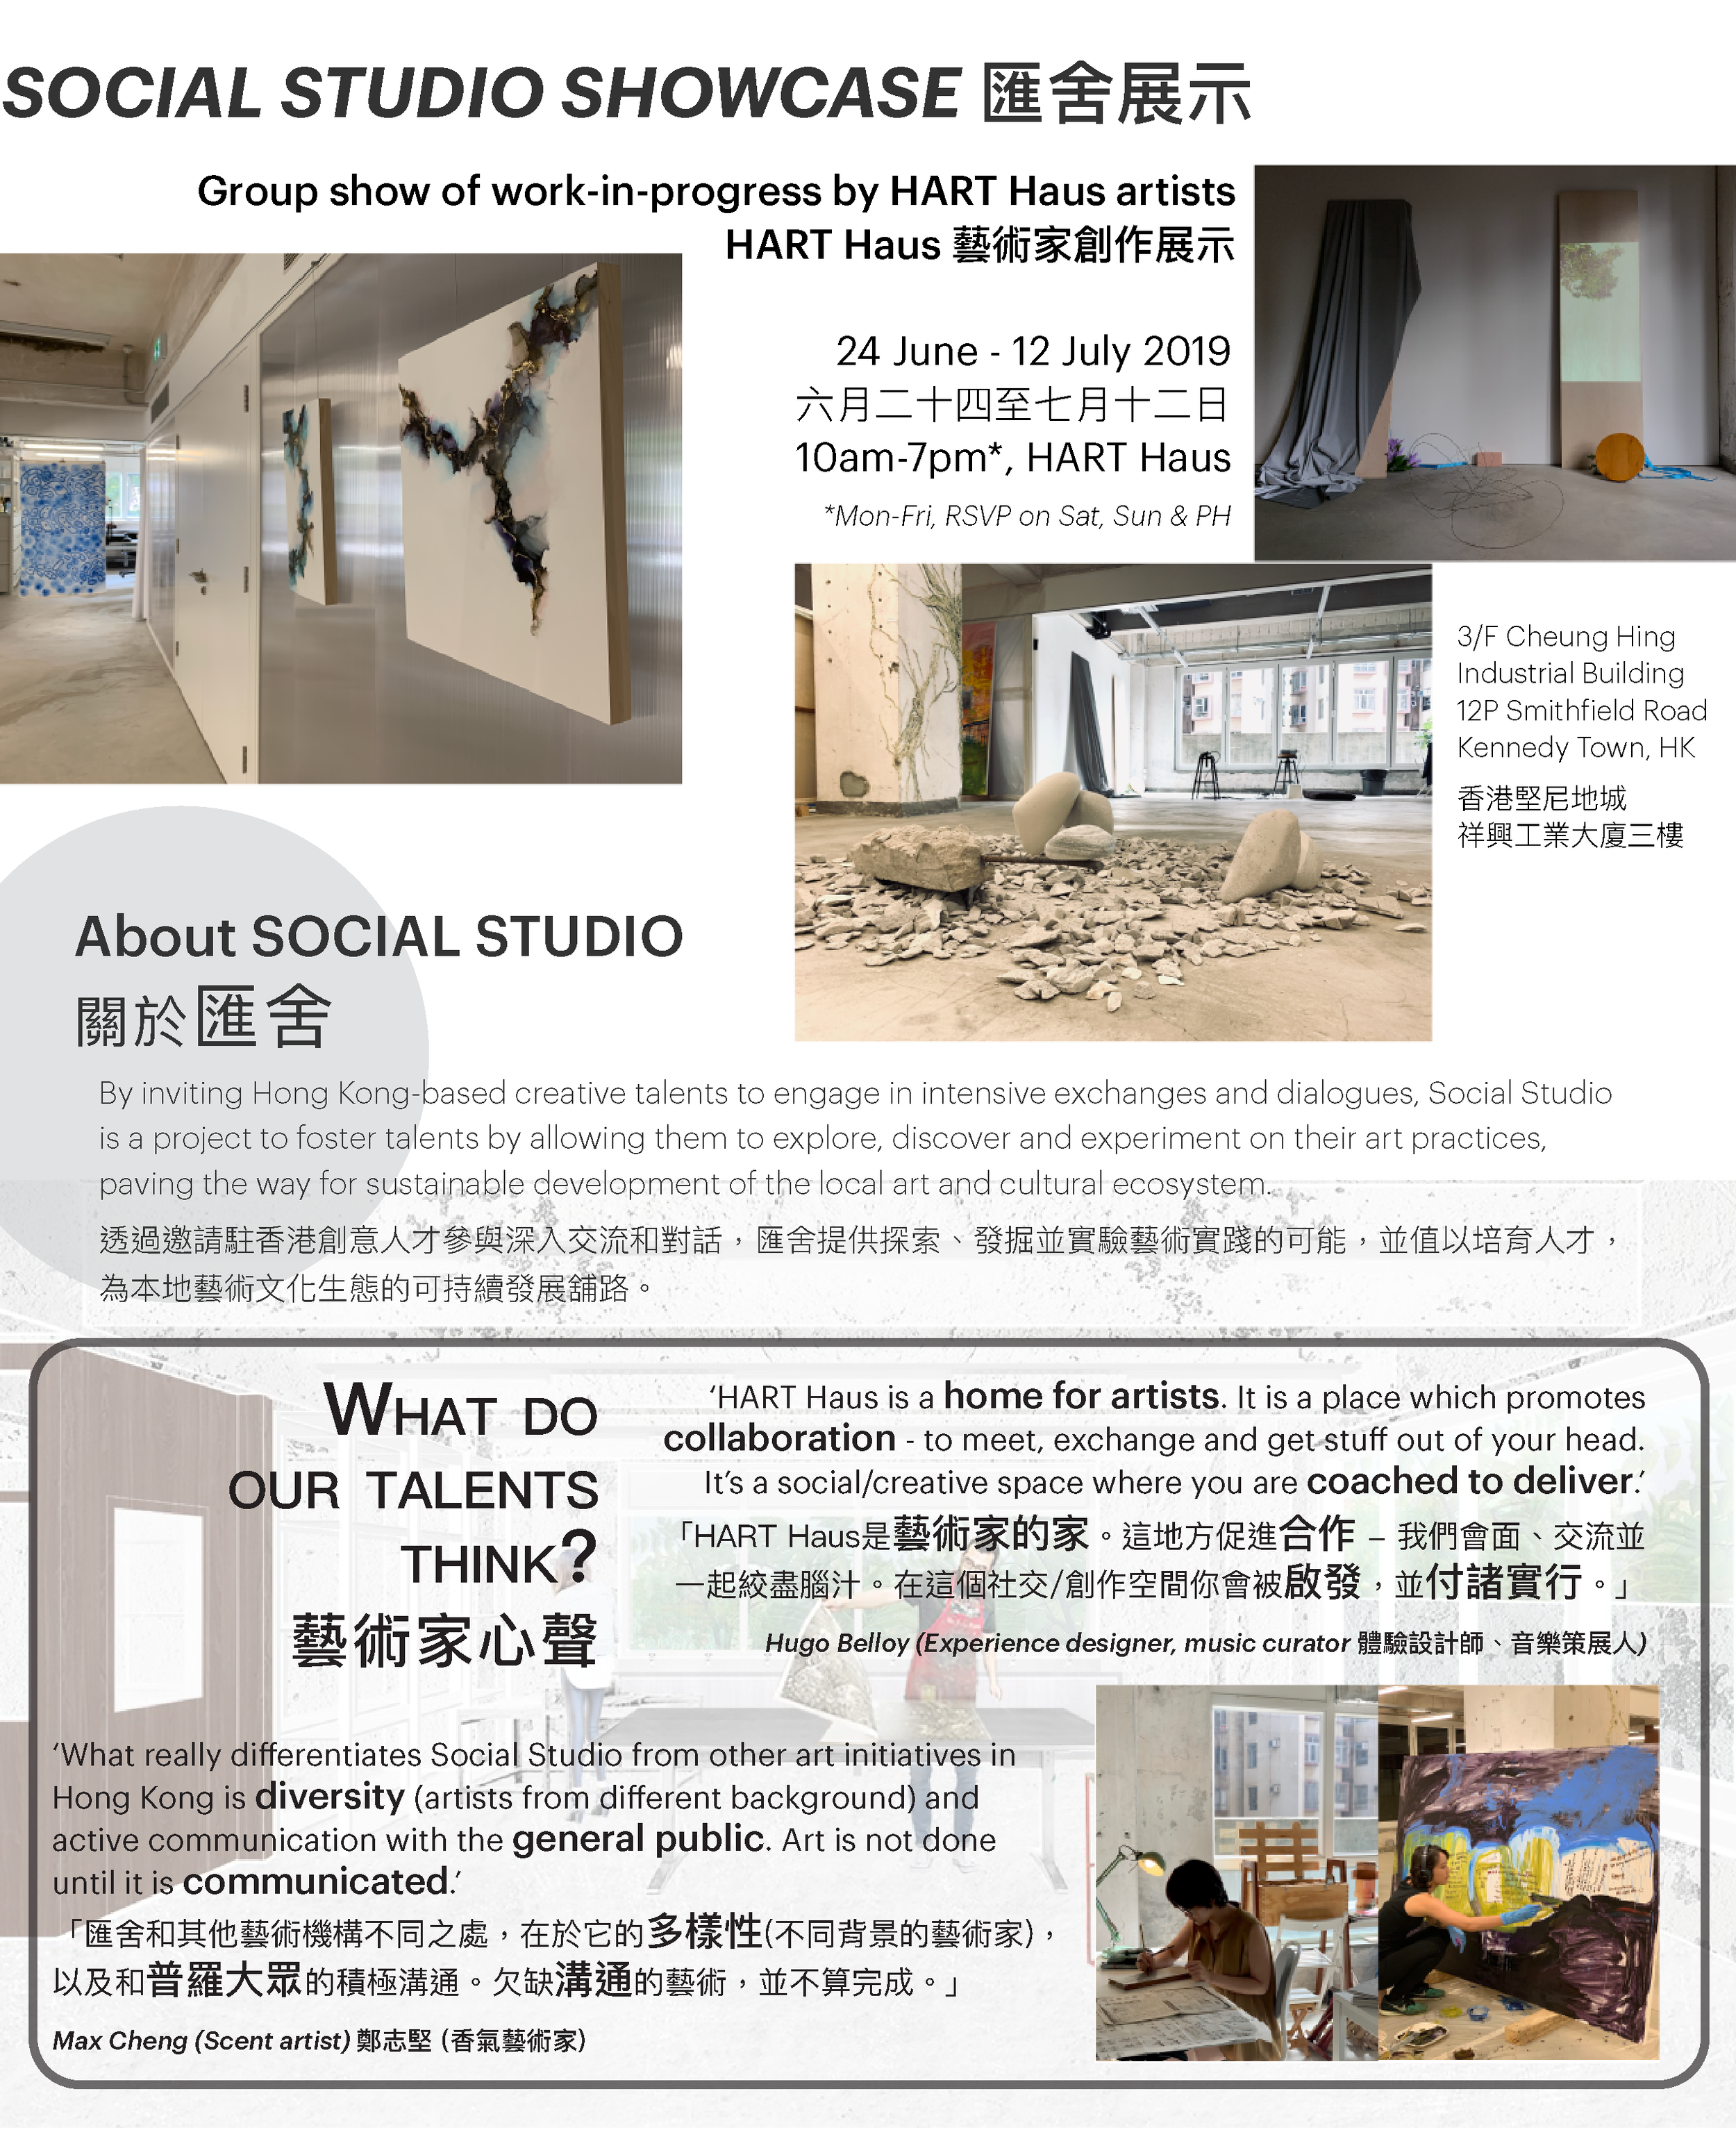 click  here  To learn more about HART Haus Artists (Hausians)   按此 更多了解HART Haus藝術家